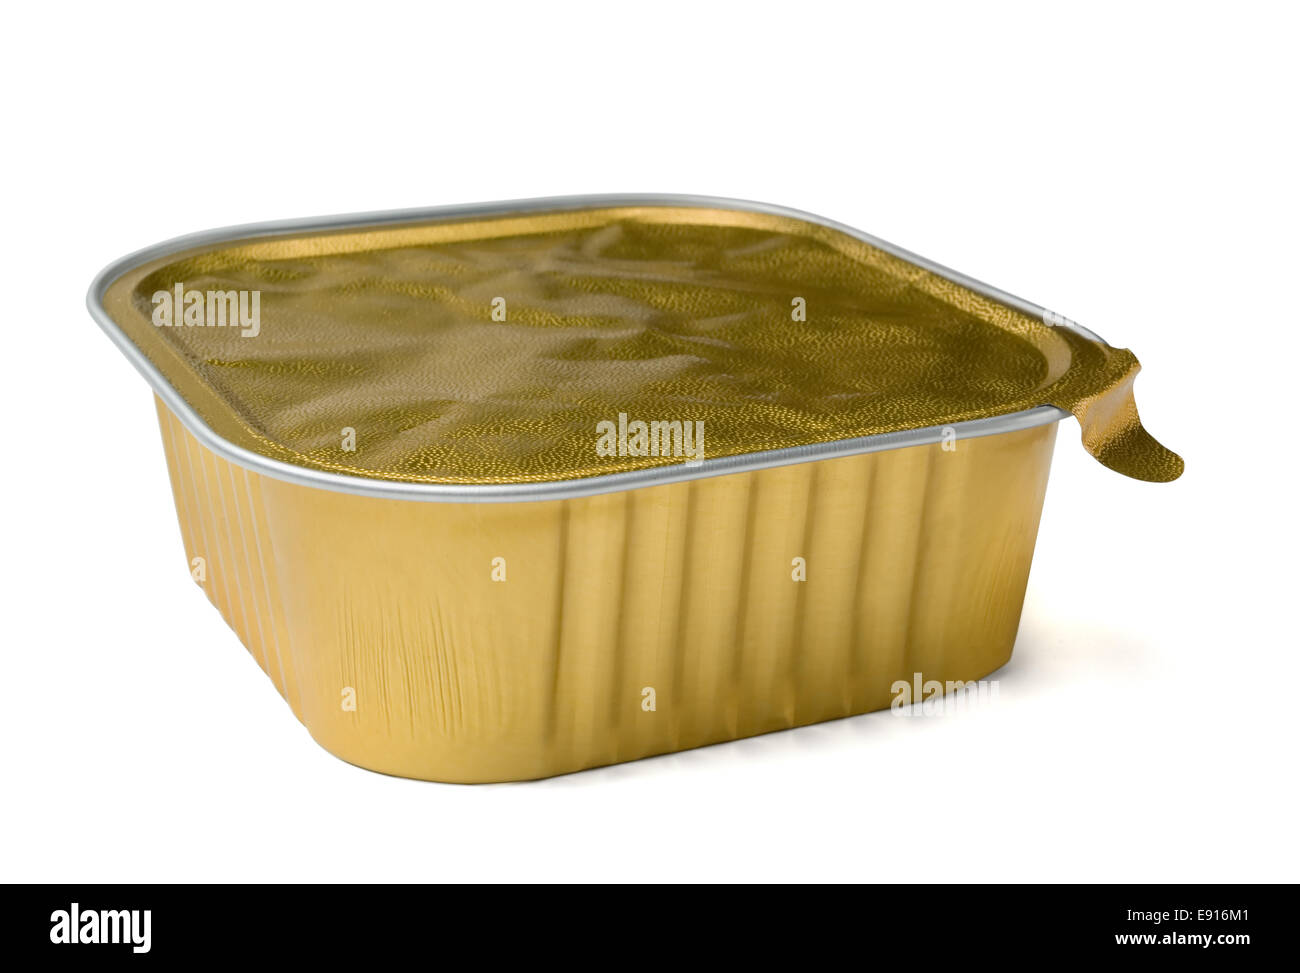 Food foil container - Stock Image